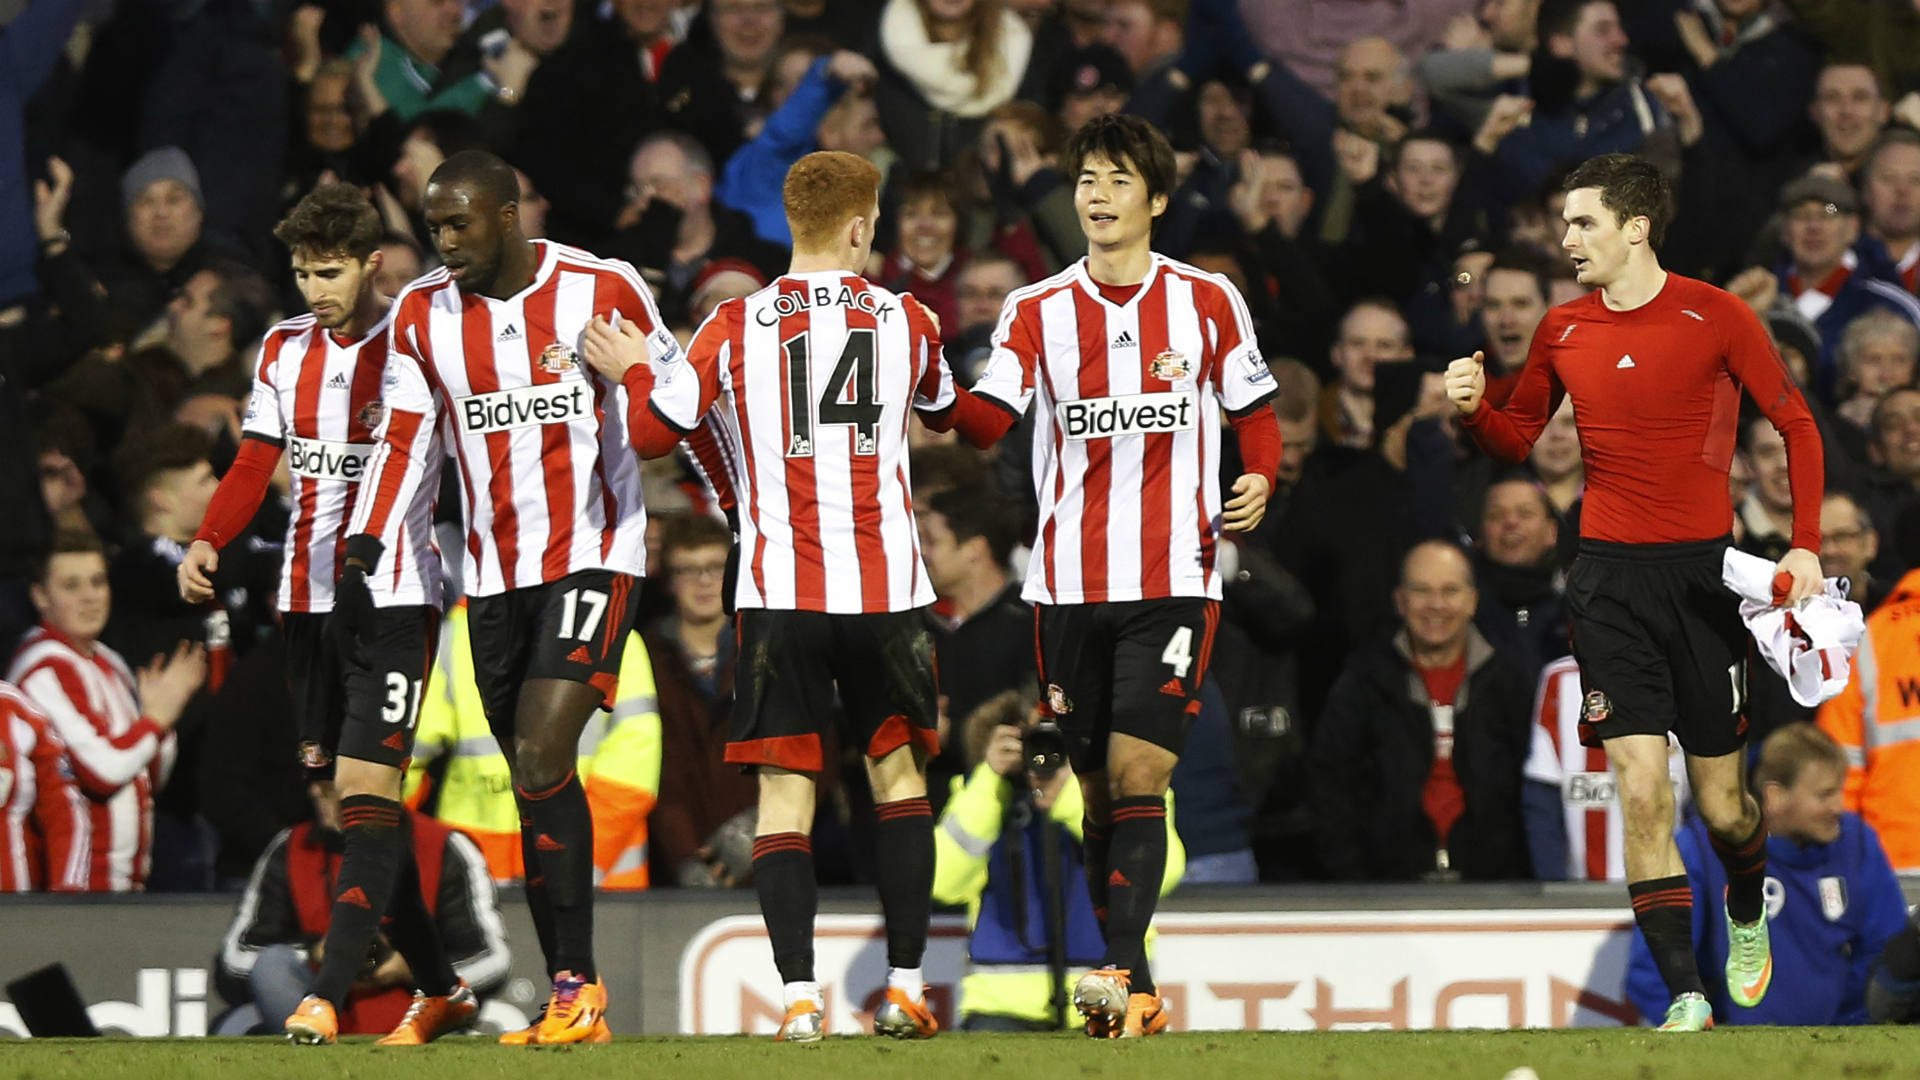 Sunderland climbs off the foot of the EPL table